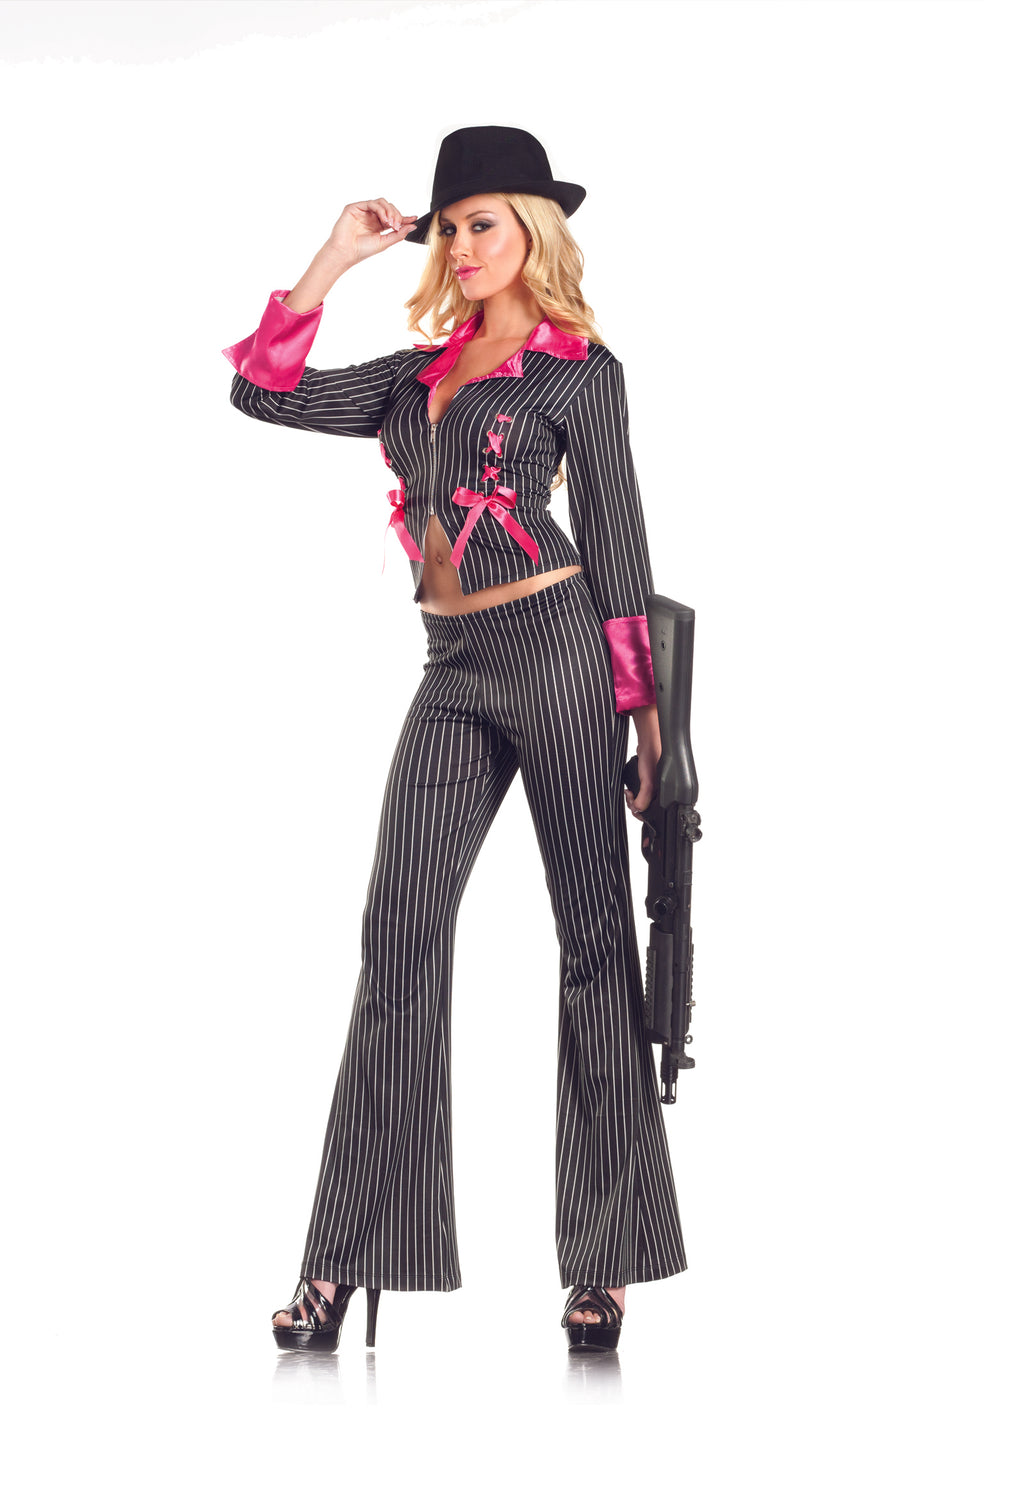 Adult-Women's-2-Piece-Sexy-Lady-Pimp-Hustler-Halloween-Party-Costume